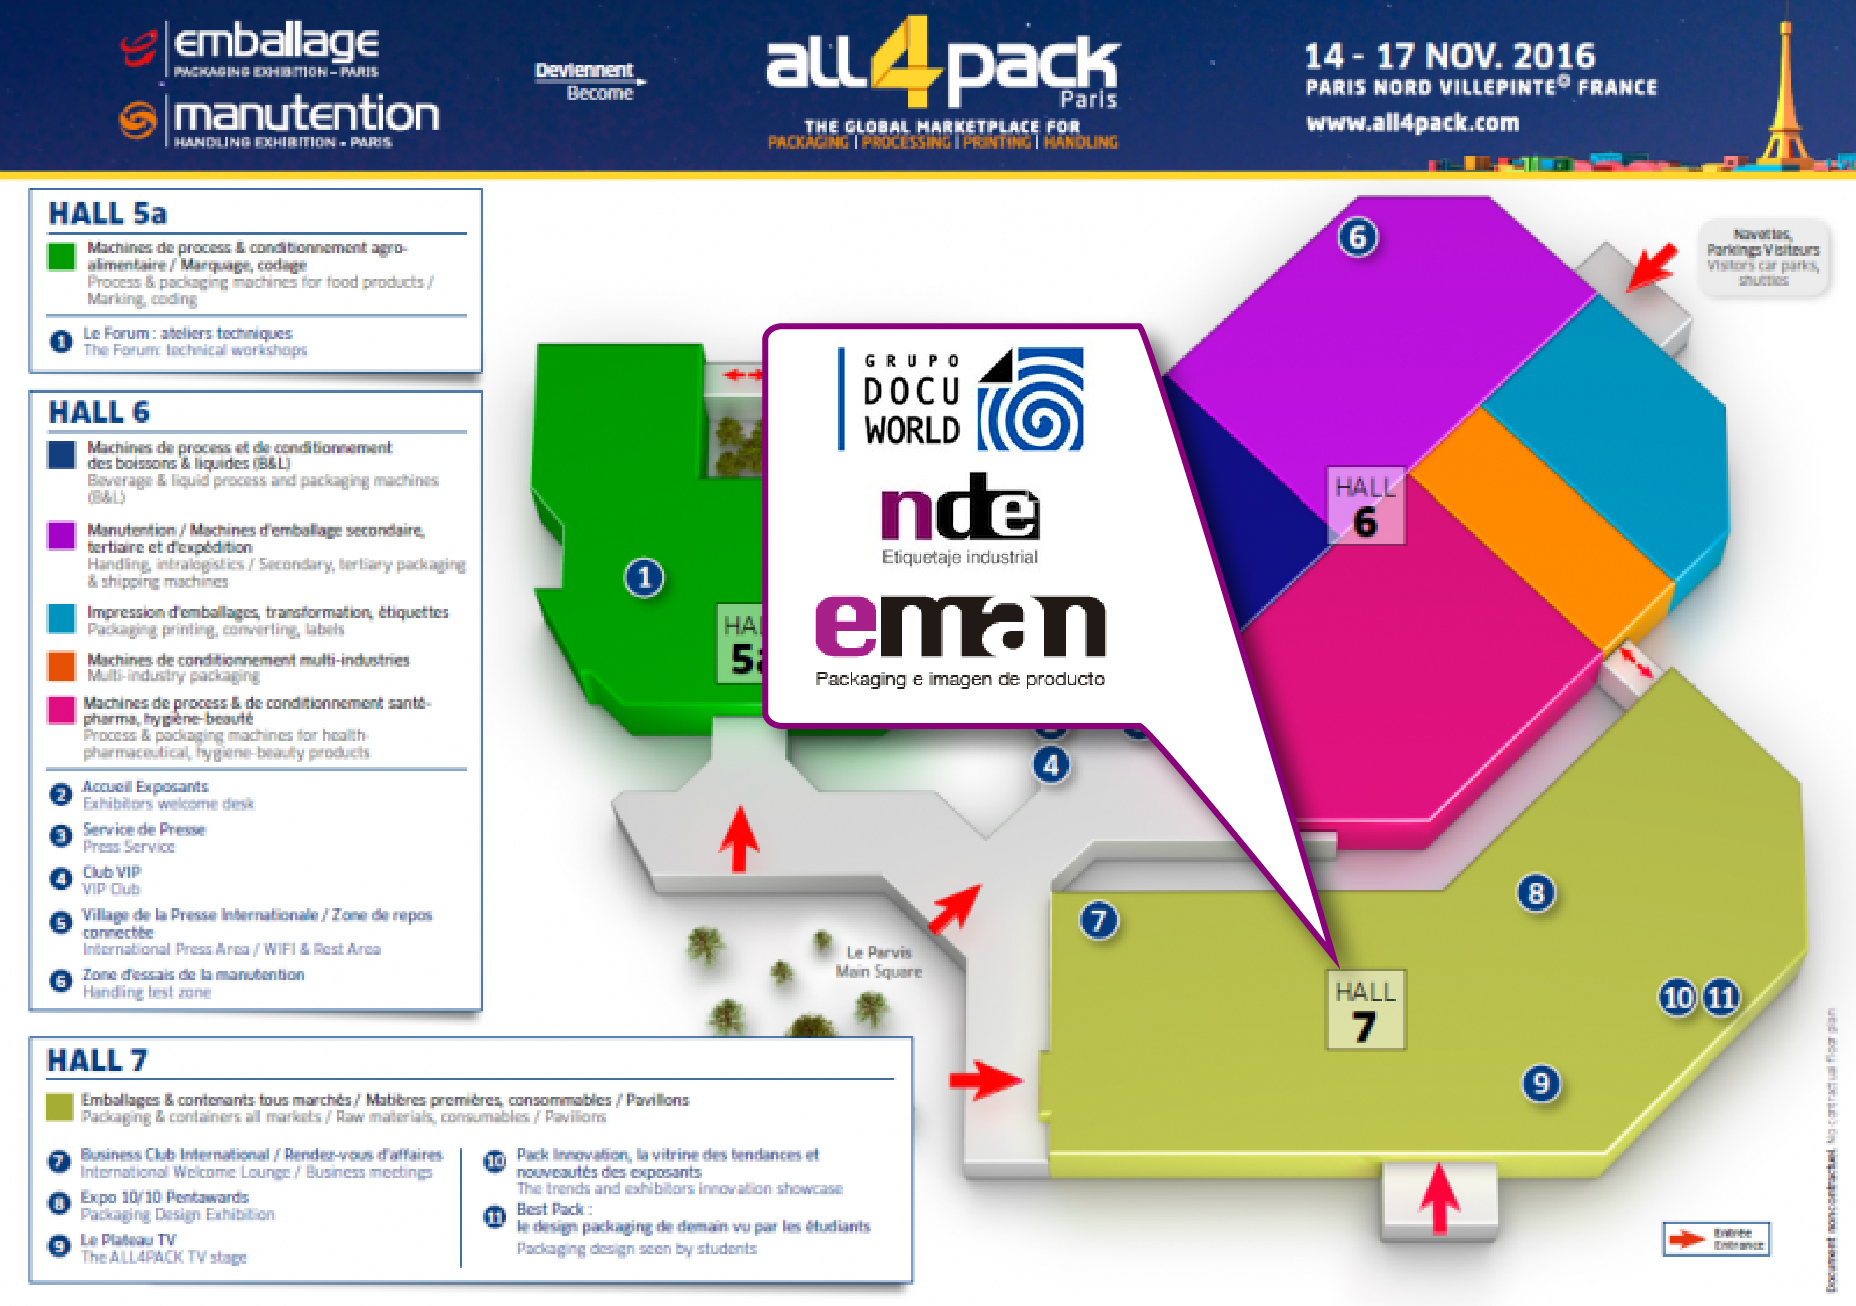 Participamos en la feria All4Pack – Emballage 2016 de París